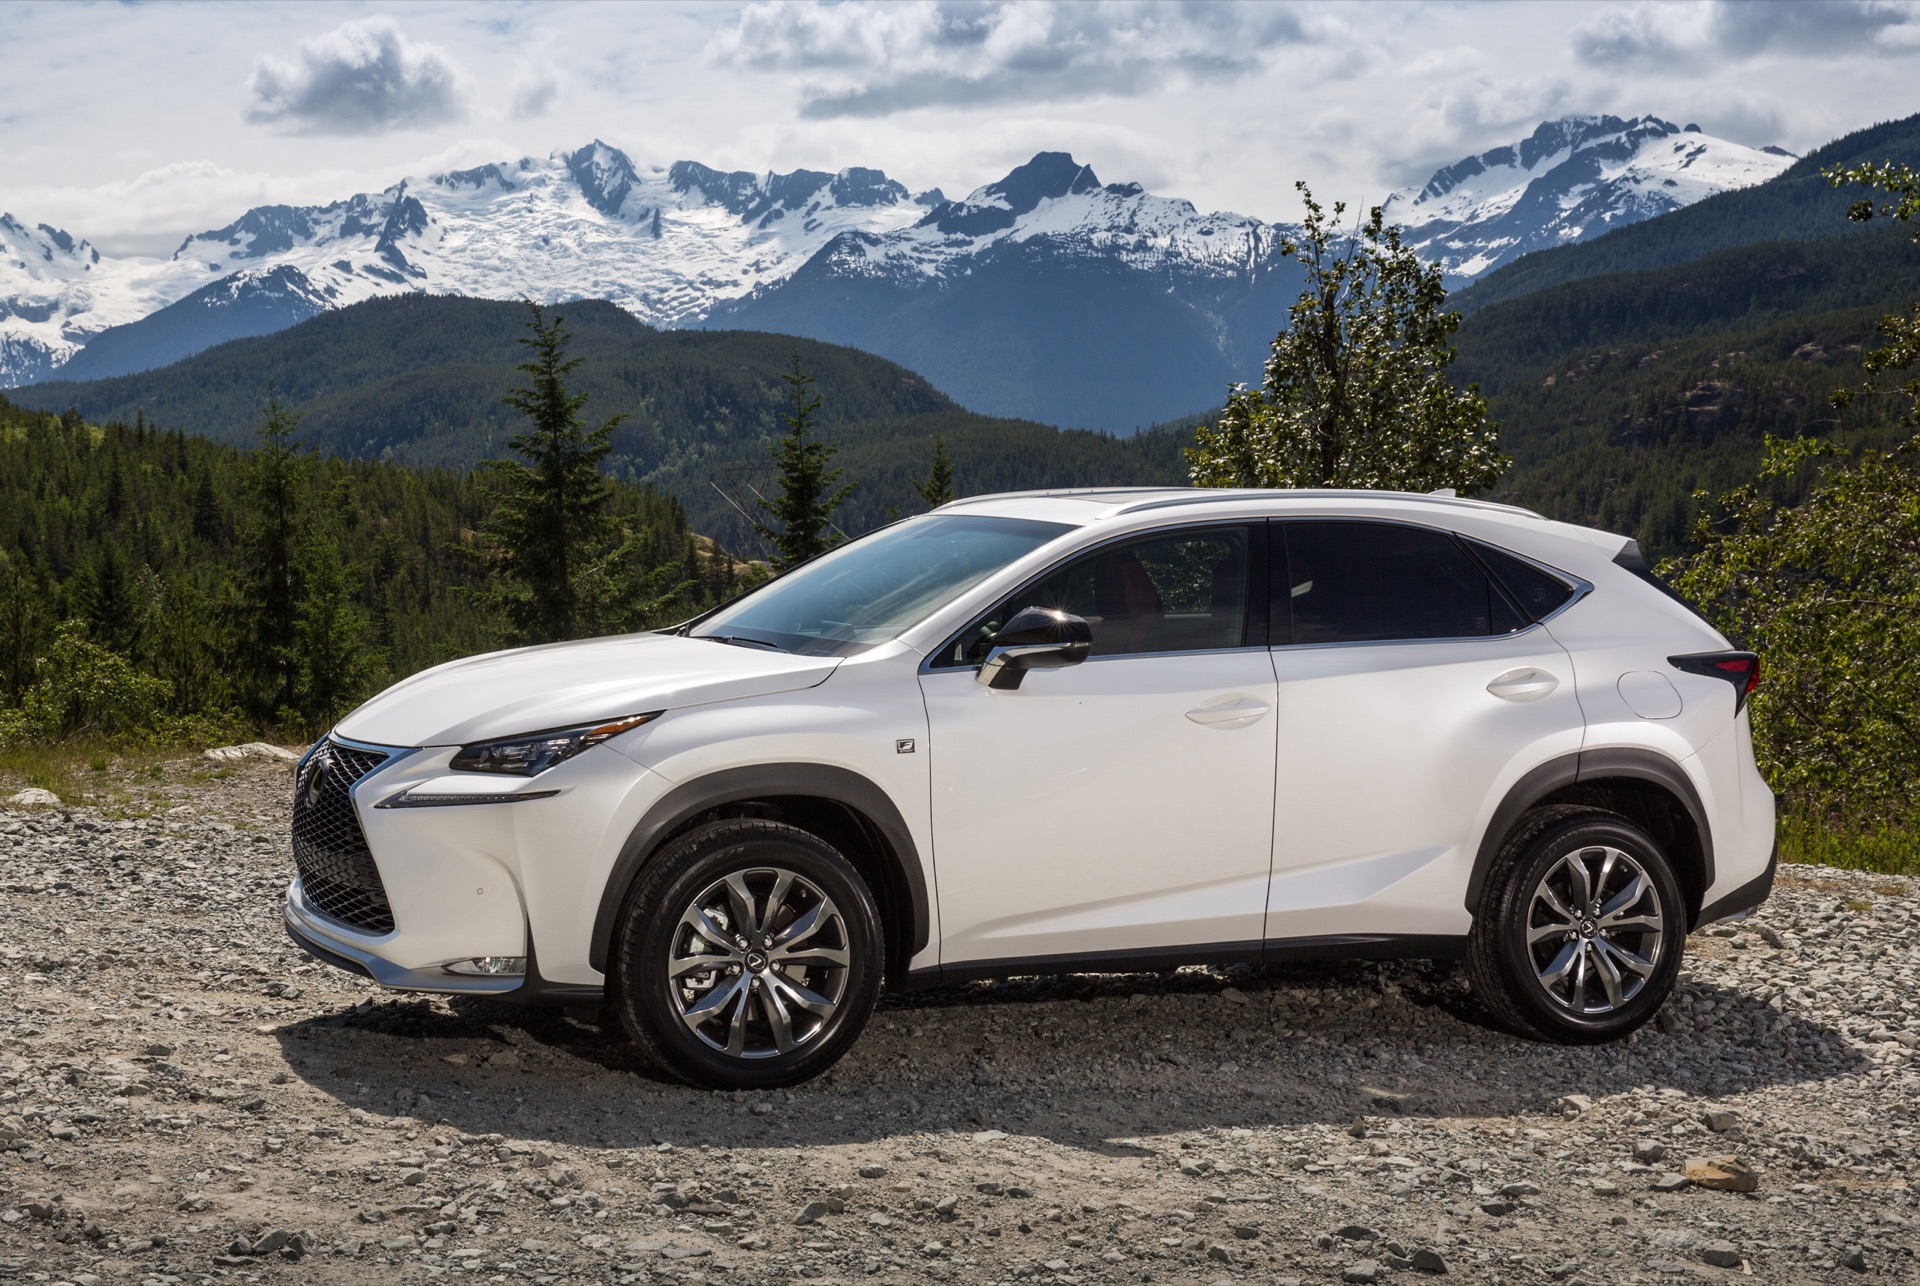 Lexus Sc 2016 >> 2016 Lexus Nx 200t Photos, Informations, Articles - BestCarMag.com